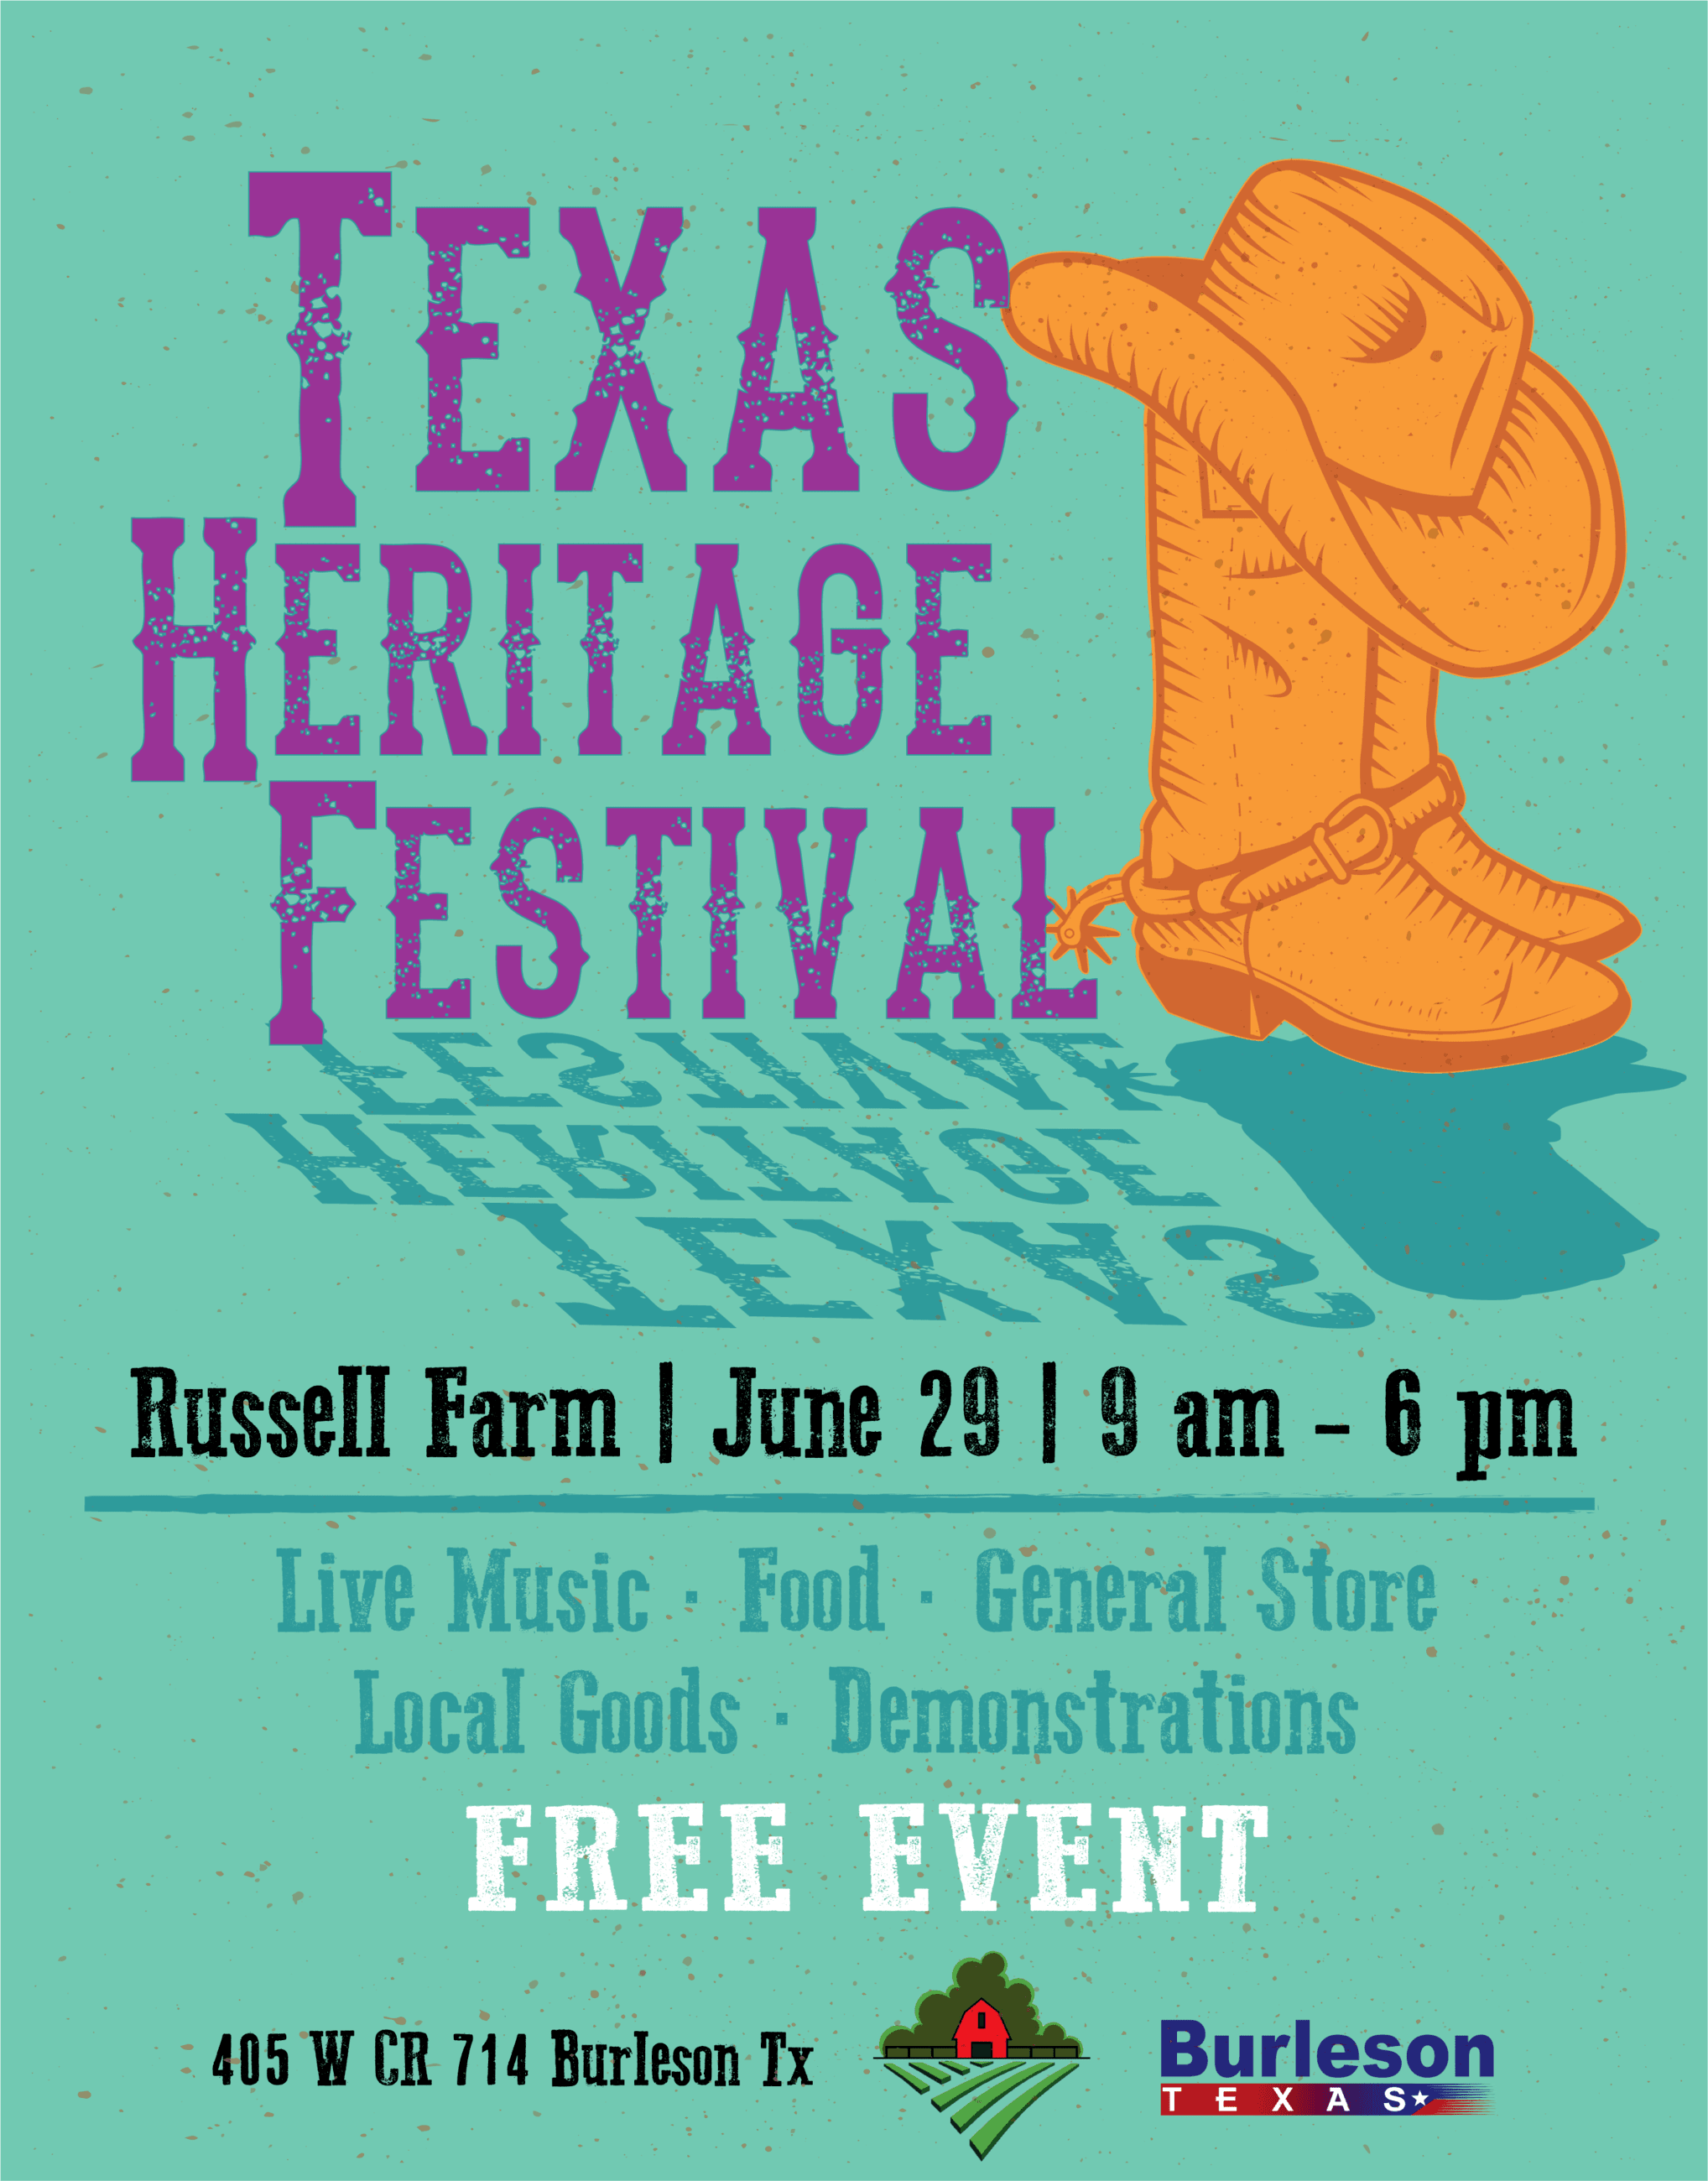 Texas Heritage Festival 2019 flyer